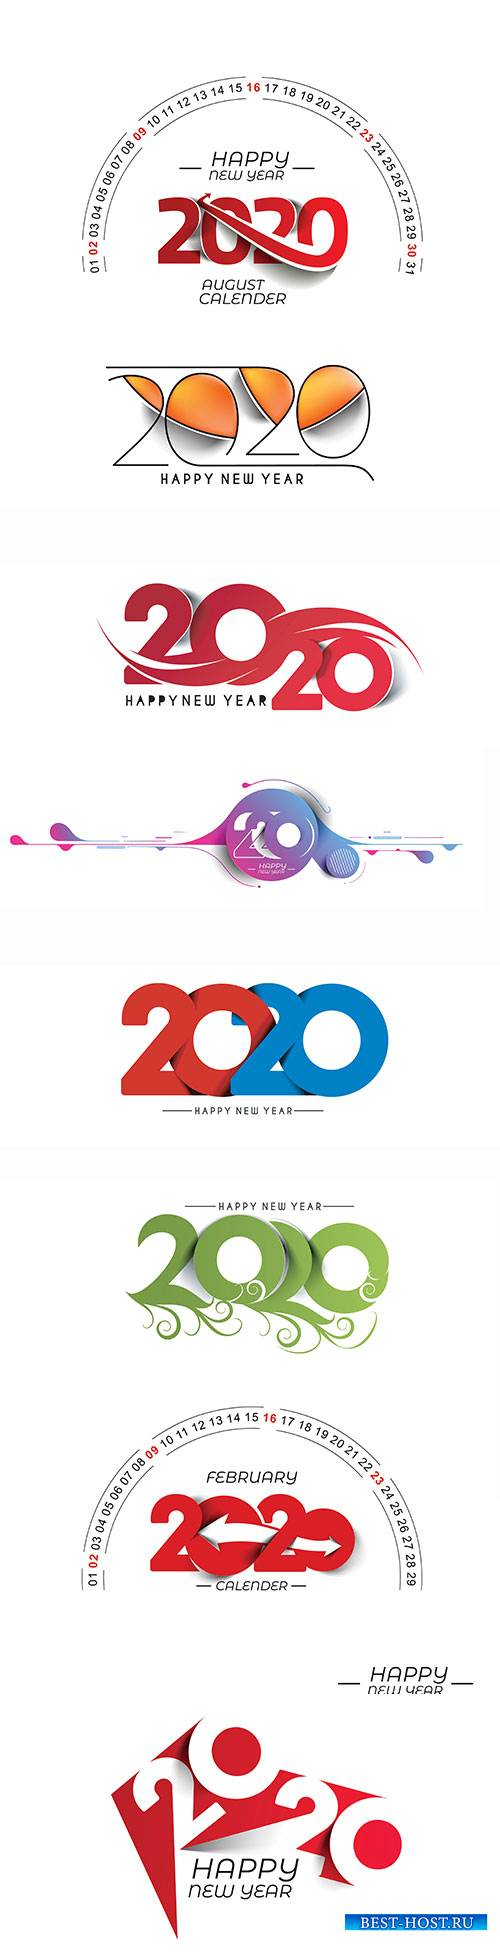 Happy New Year 2020 text design vector illustration